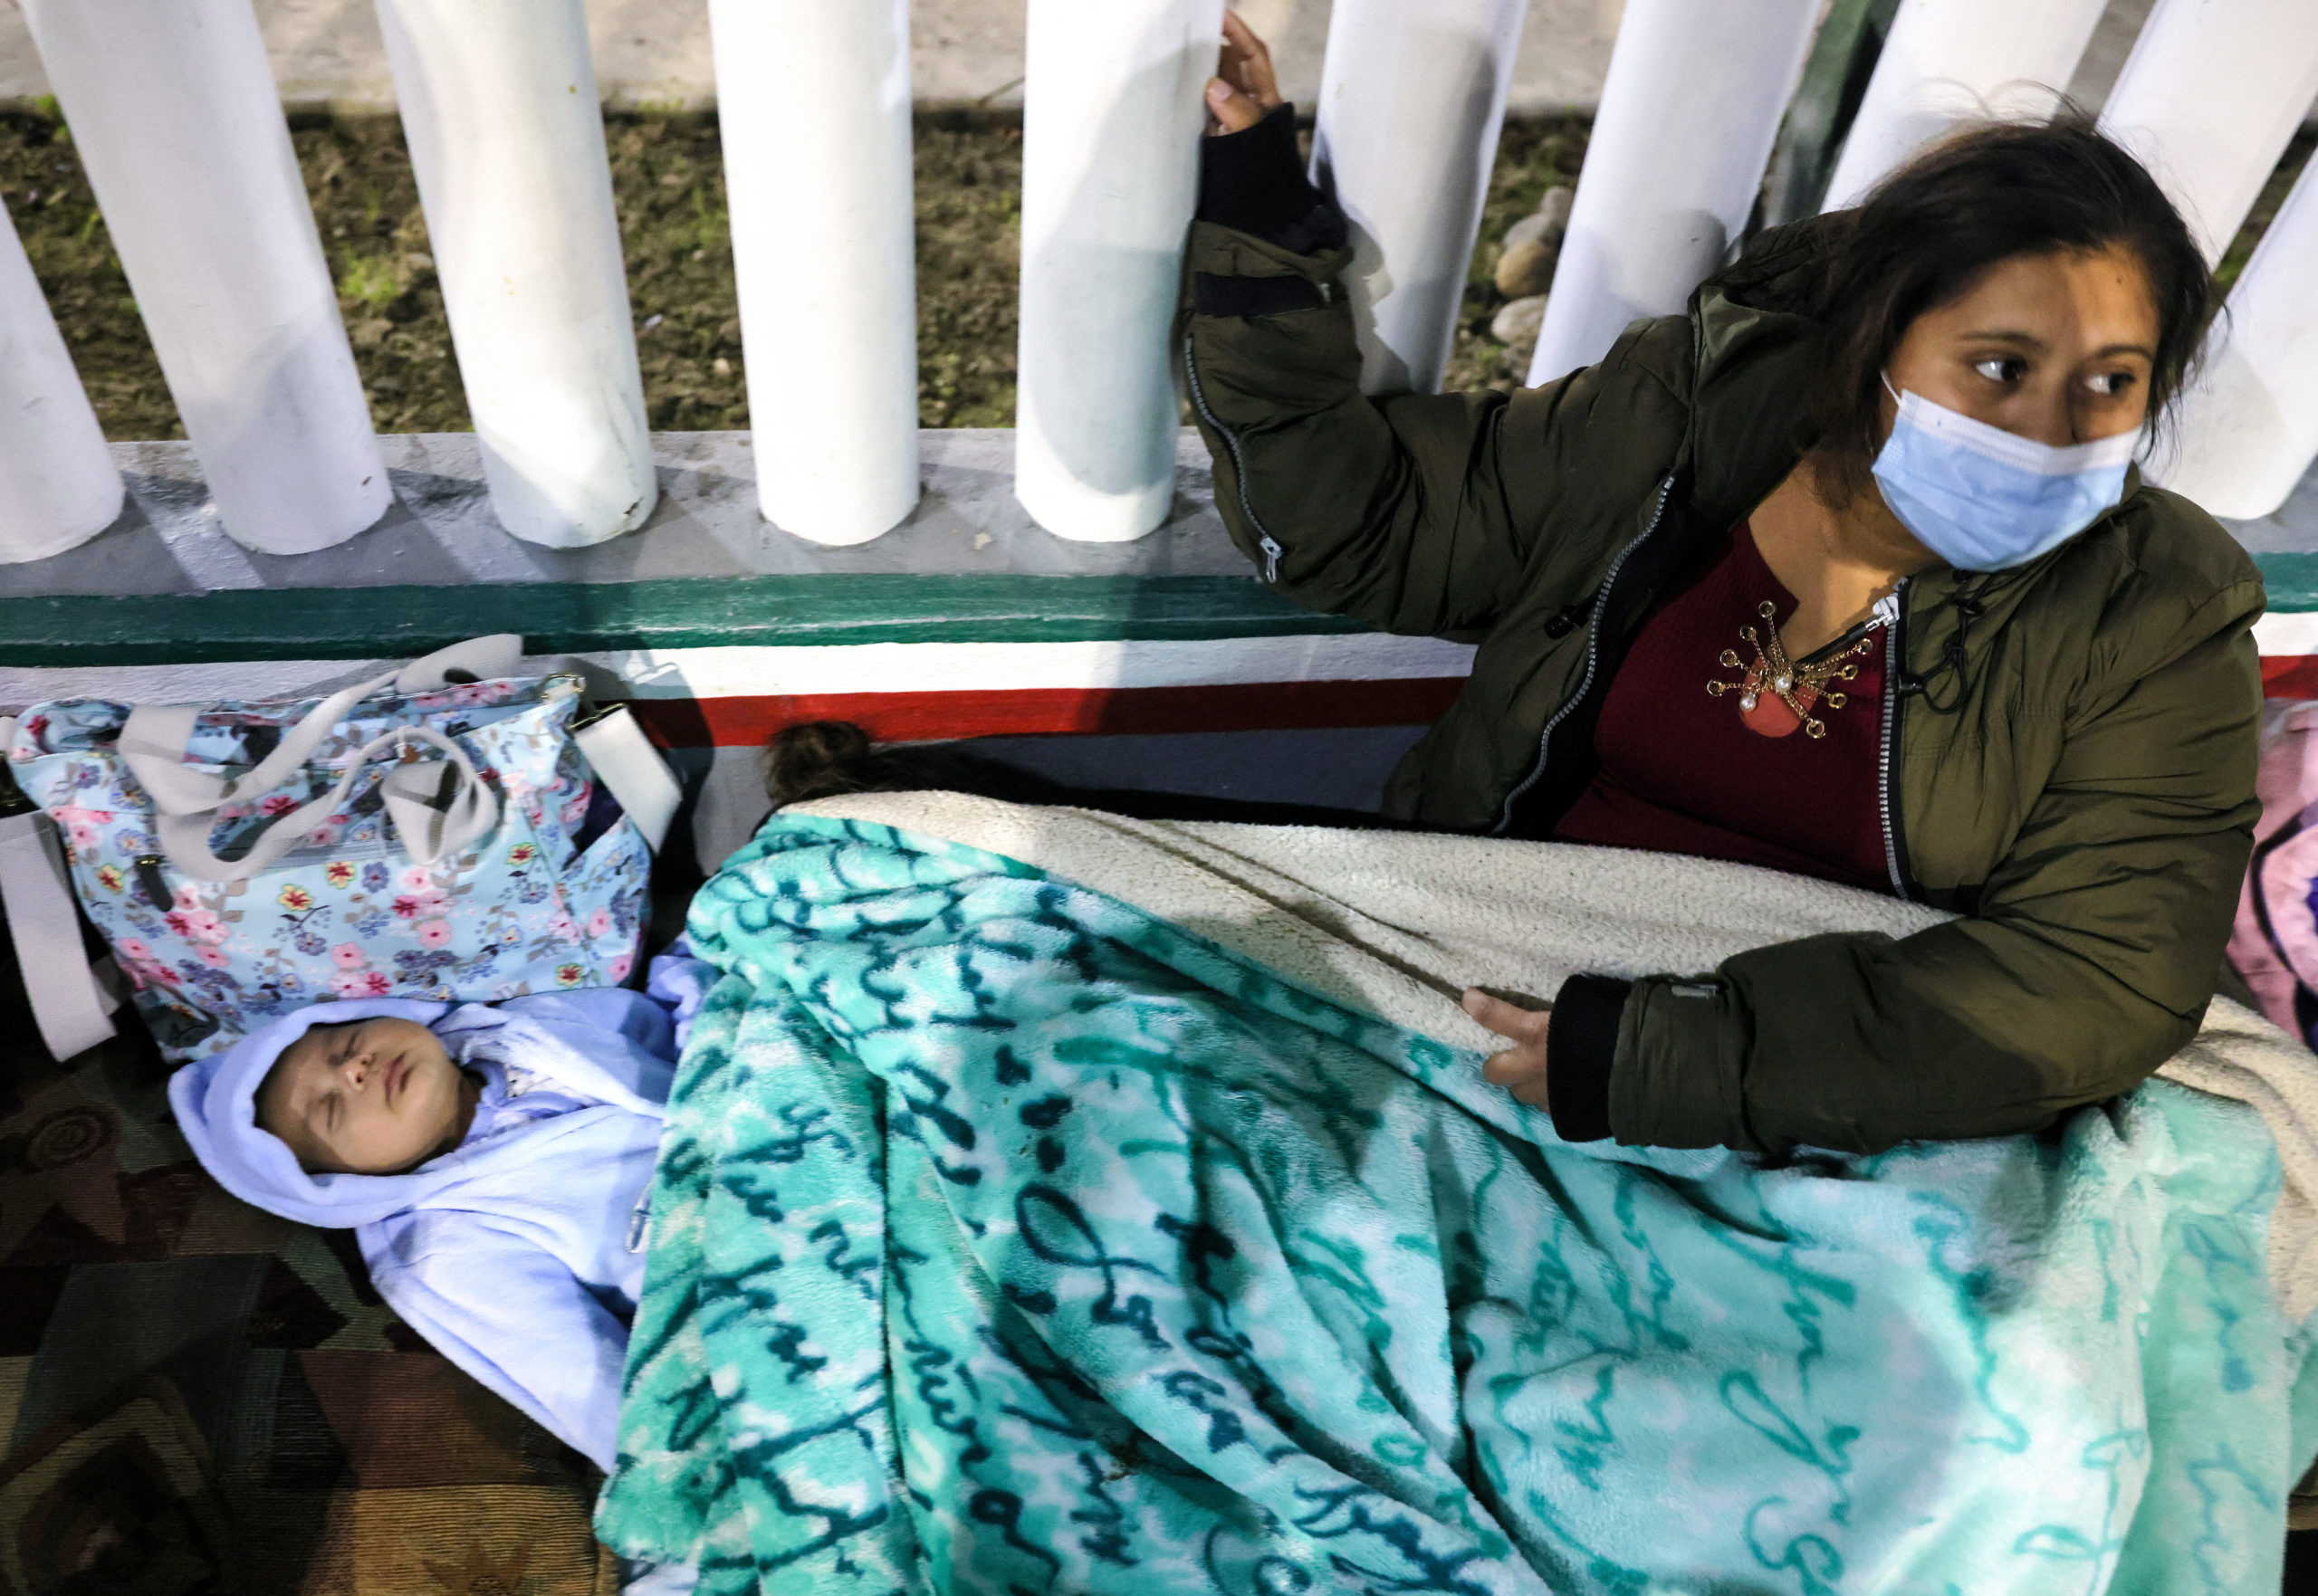 A Honduran mother sits with her one-month-old son and others who are seeking asylum in the United States outside the El Chaparral border crossing in the early morning hours on Feb. 19 in Tijuana, Mexico. (Mario Tama/Getty Images)